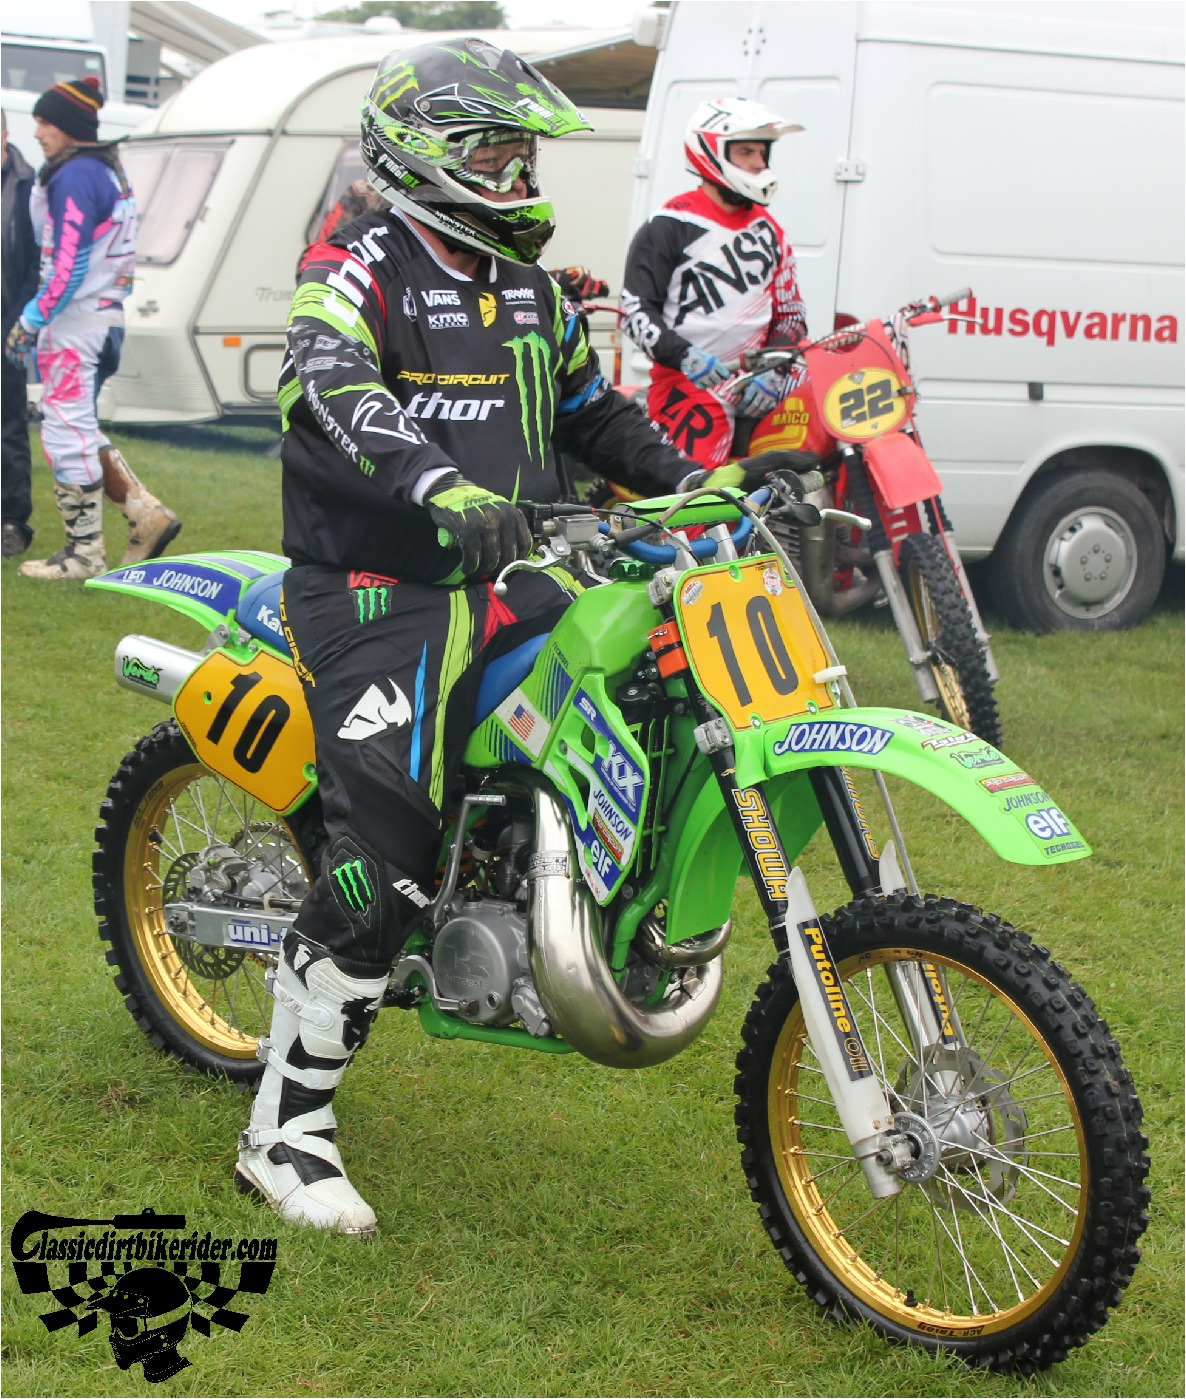 classicdirtbikerider.com-national-twinshock-championship-2015-Garstang-riders get ready for practice 12